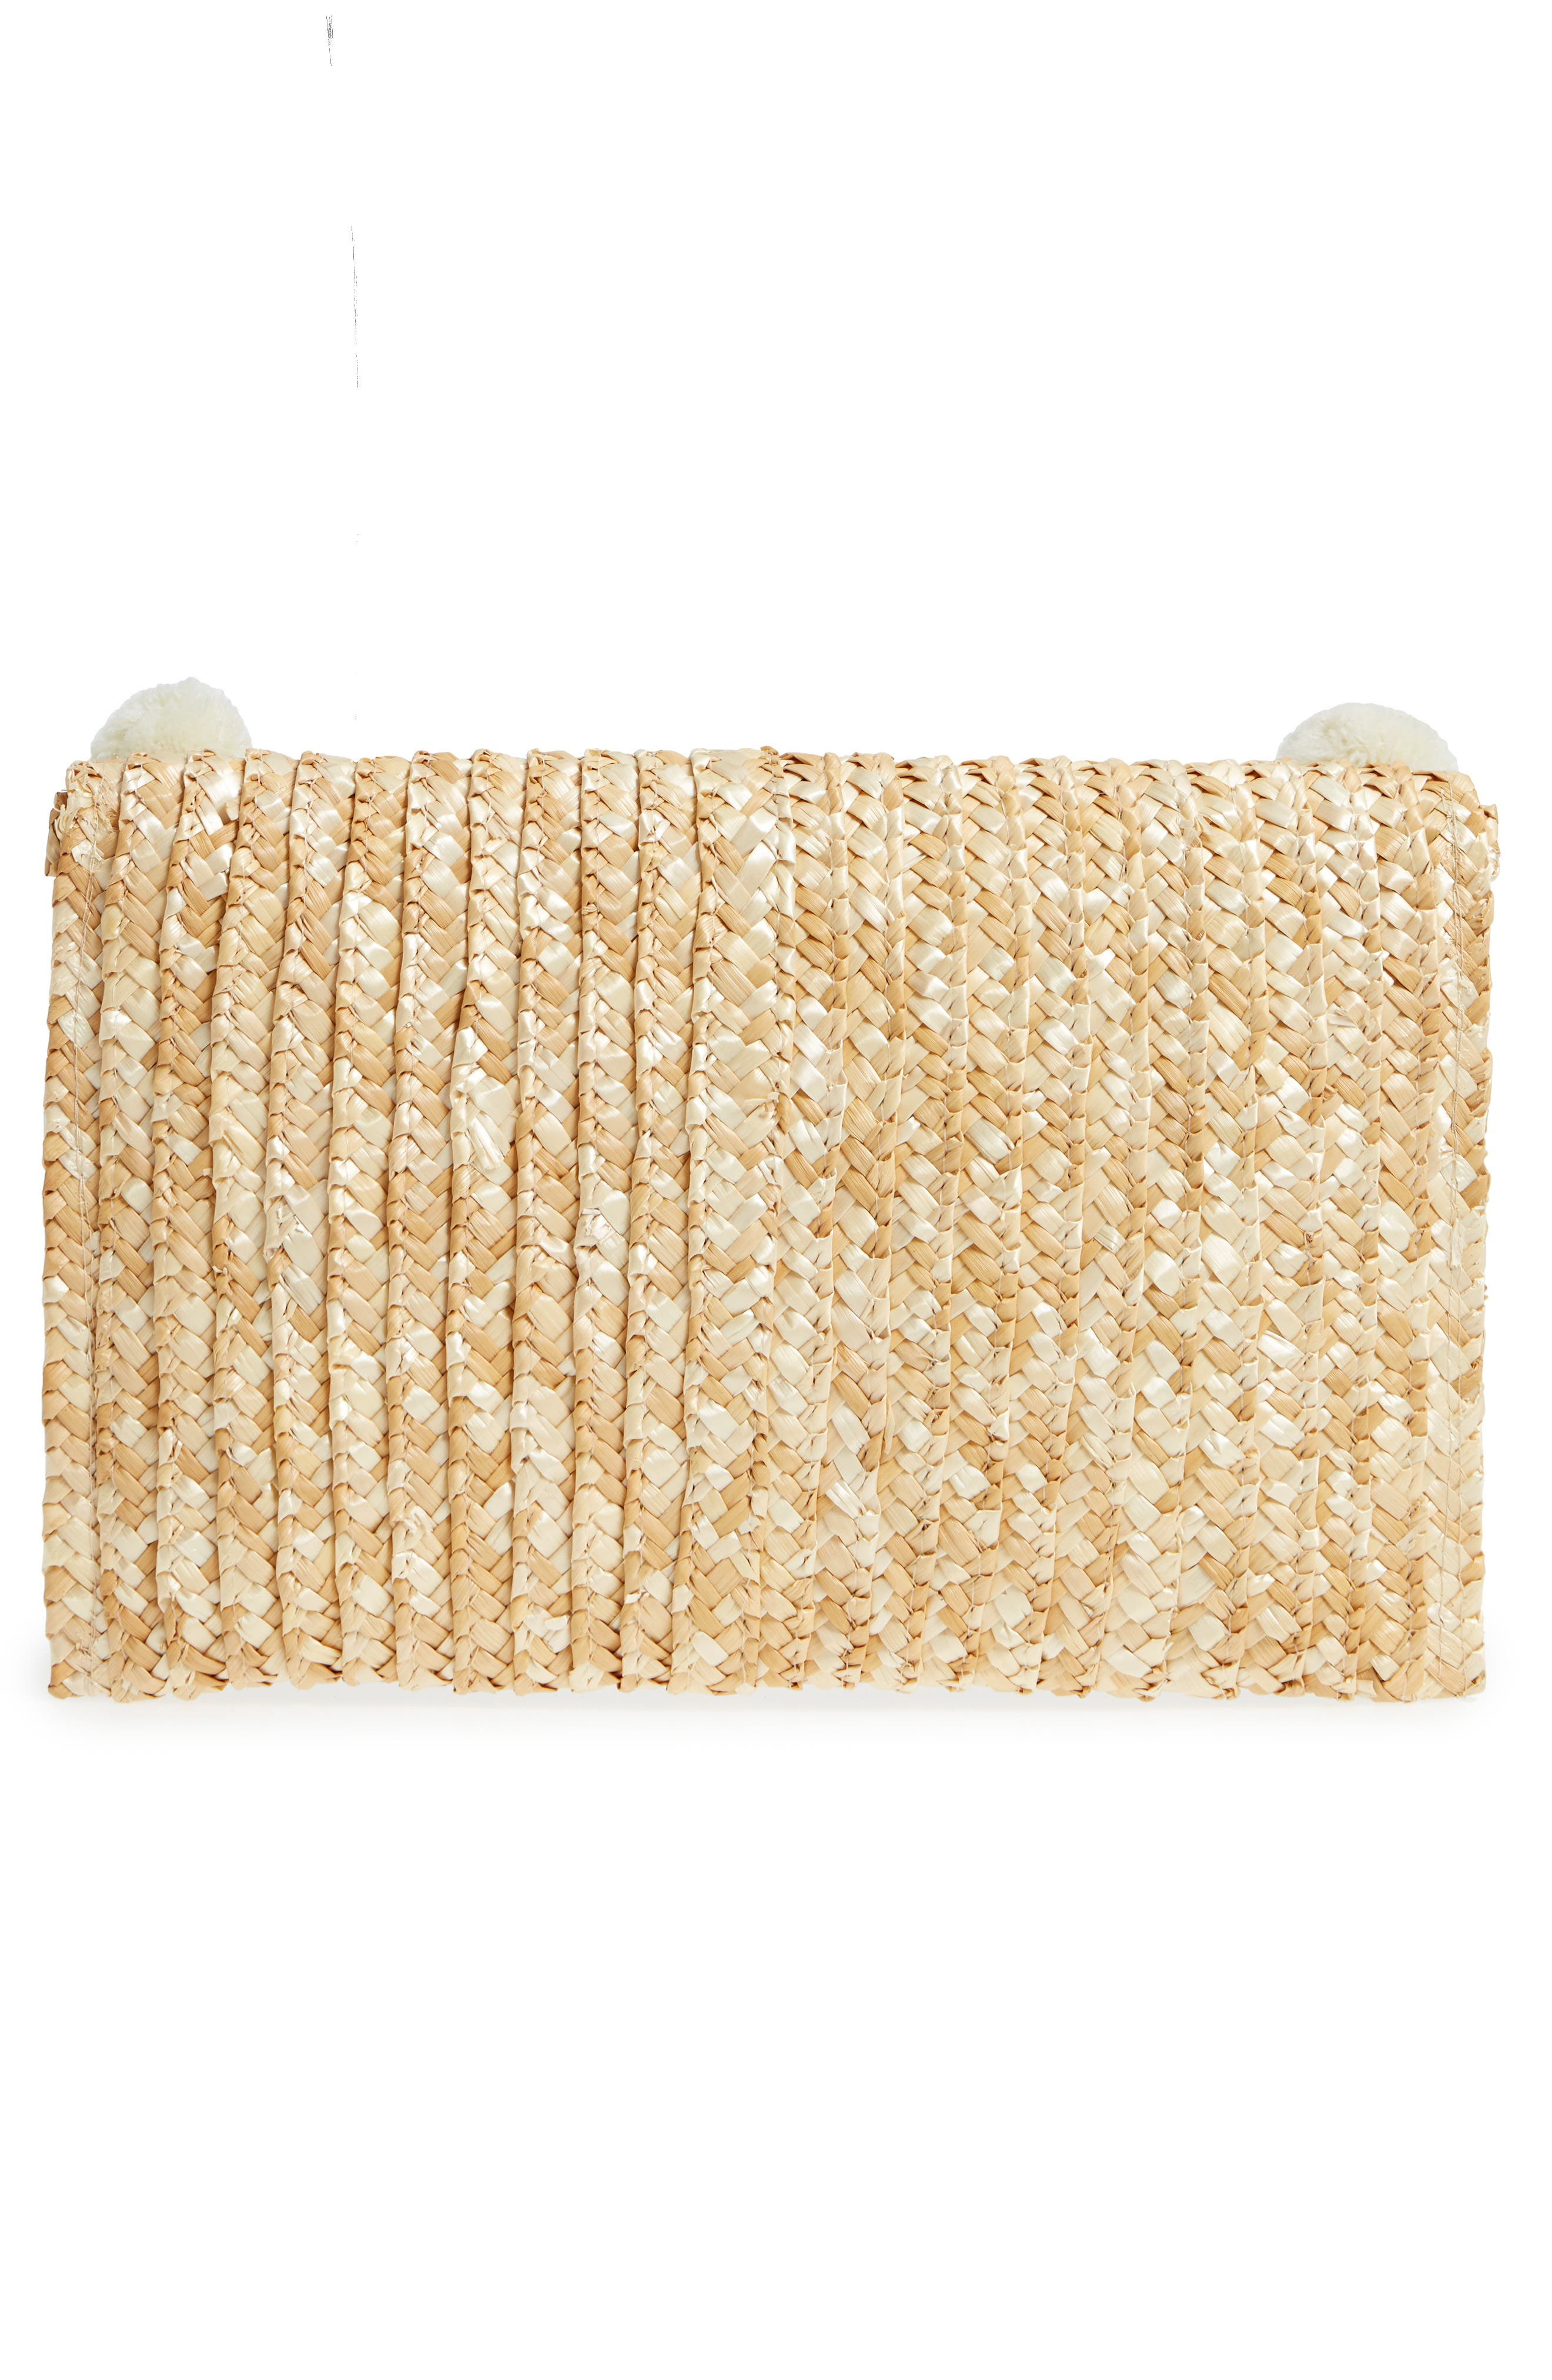 Fortuna Straw Clutch,                             Alternate thumbnail 3, color,                             Natural